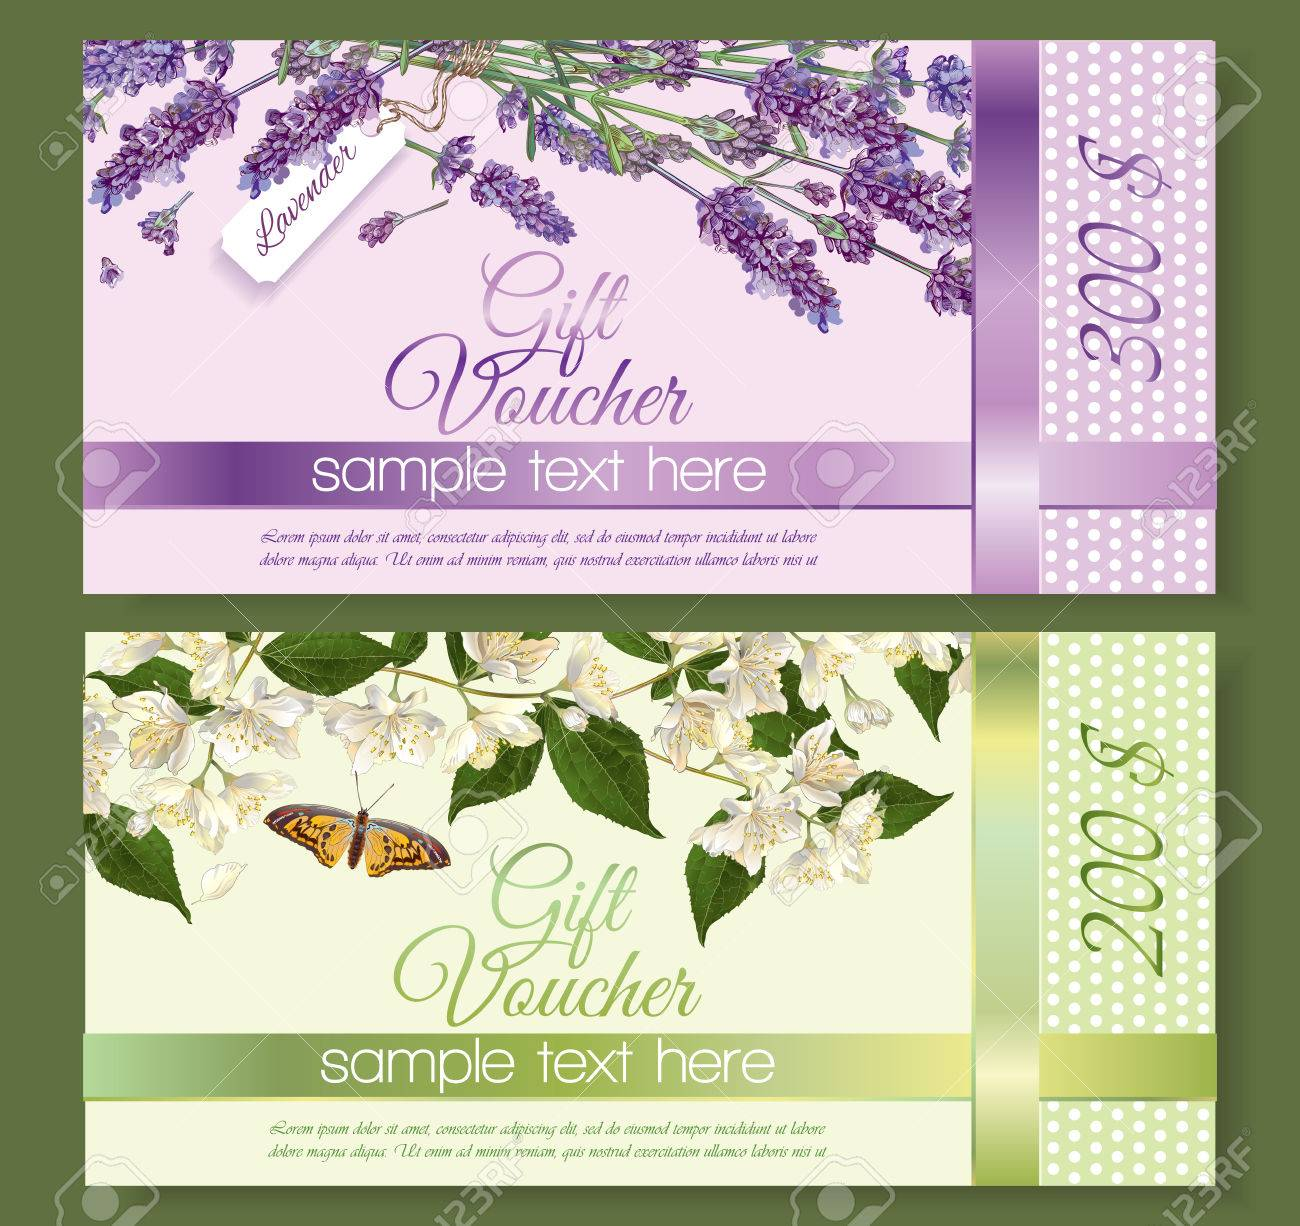 Natural Cosmetics Gift Vouchers With Flowers Design For Cosmetics Royalty Free Cliparts Vectors And Stock Illustration Image 64576574